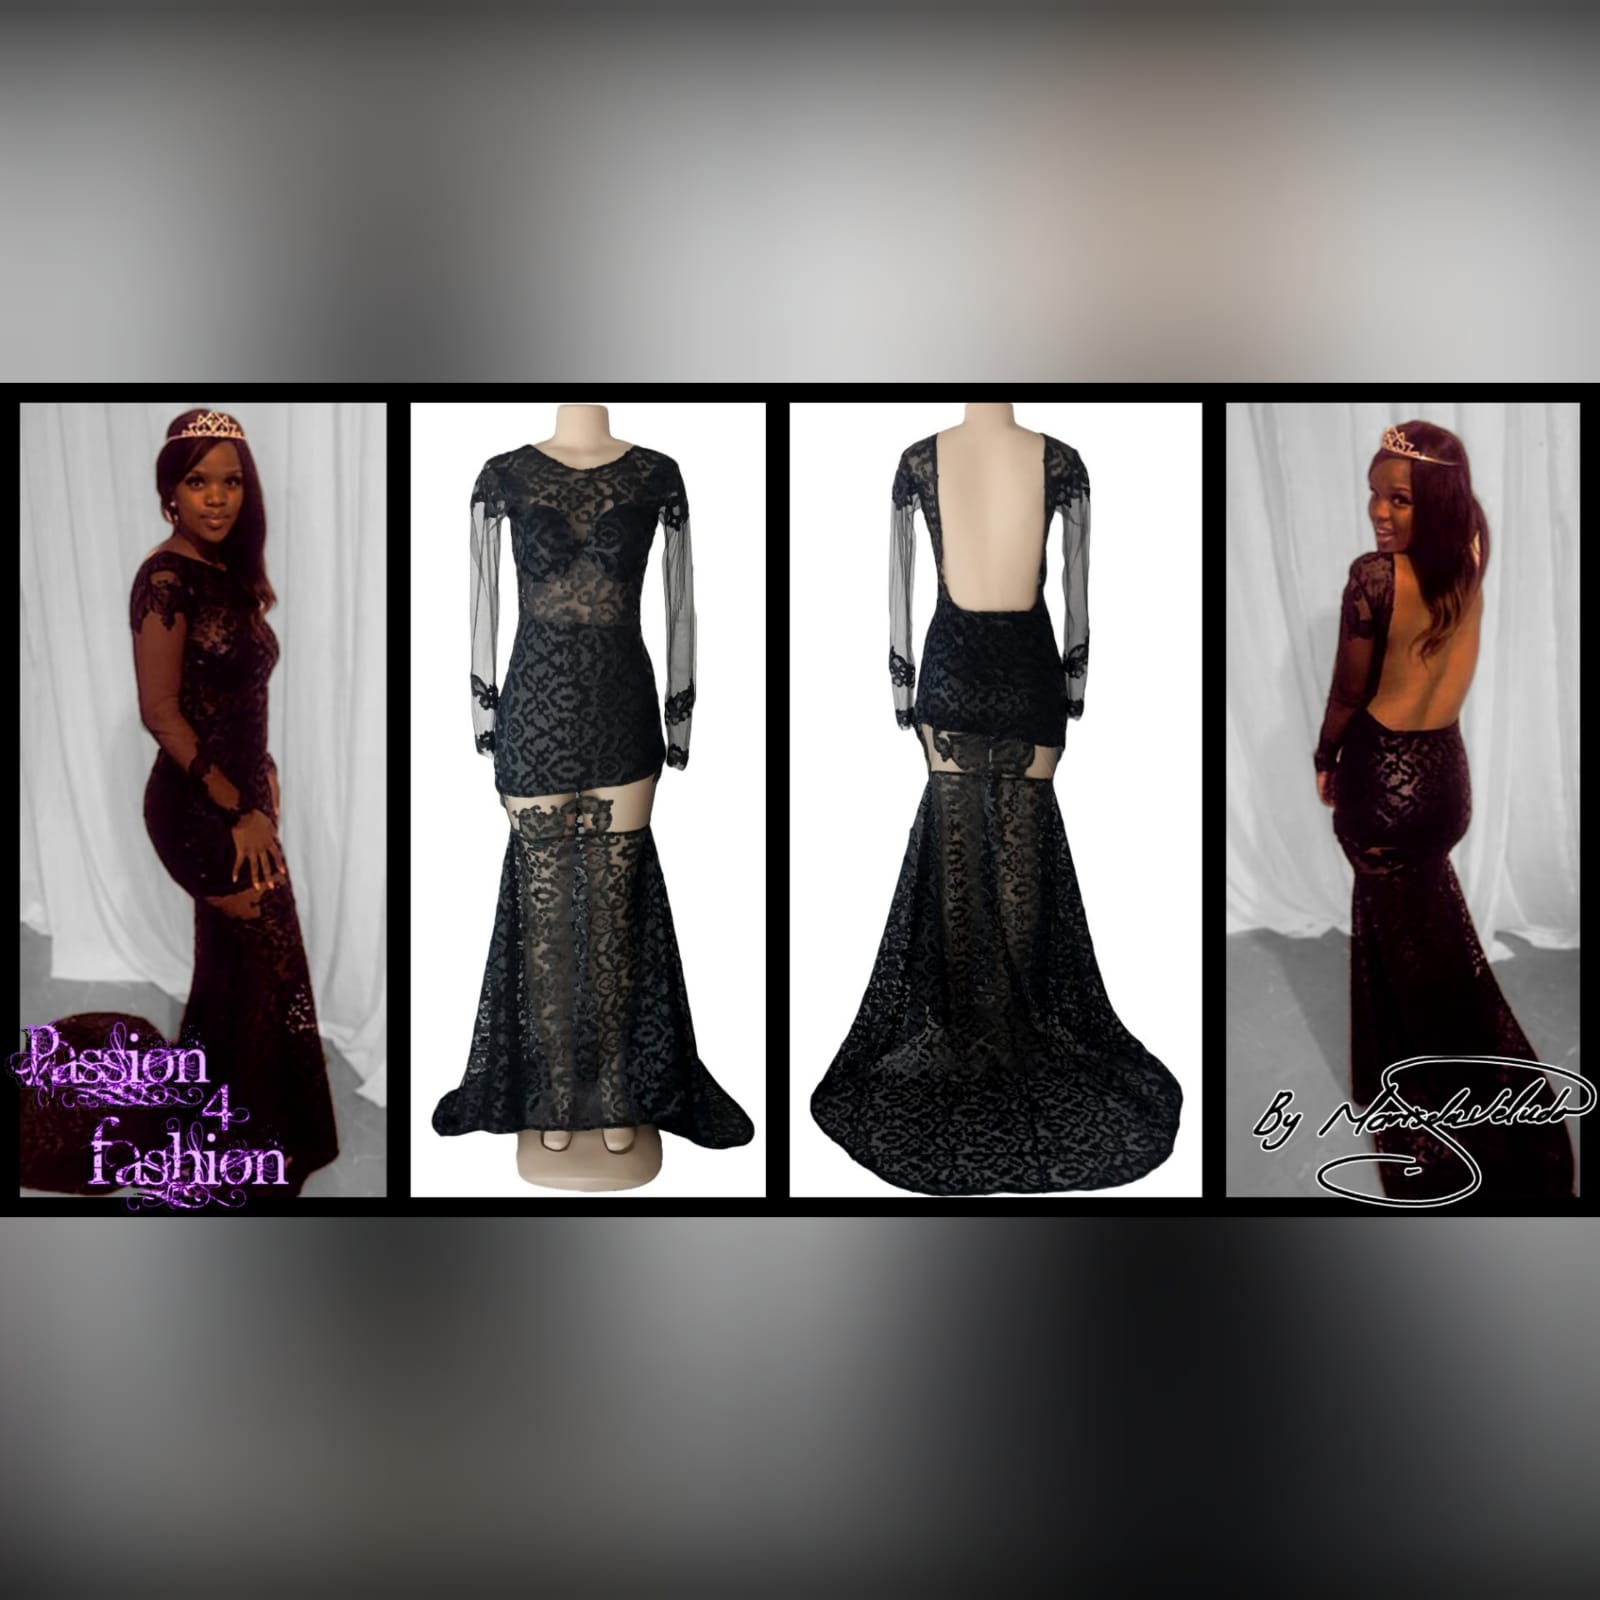 21st birthday party black dress 2 black long suede lace evening dress for 21st birthday party, with sheer black long sleeves and sheer thigh area, with a train and an open back